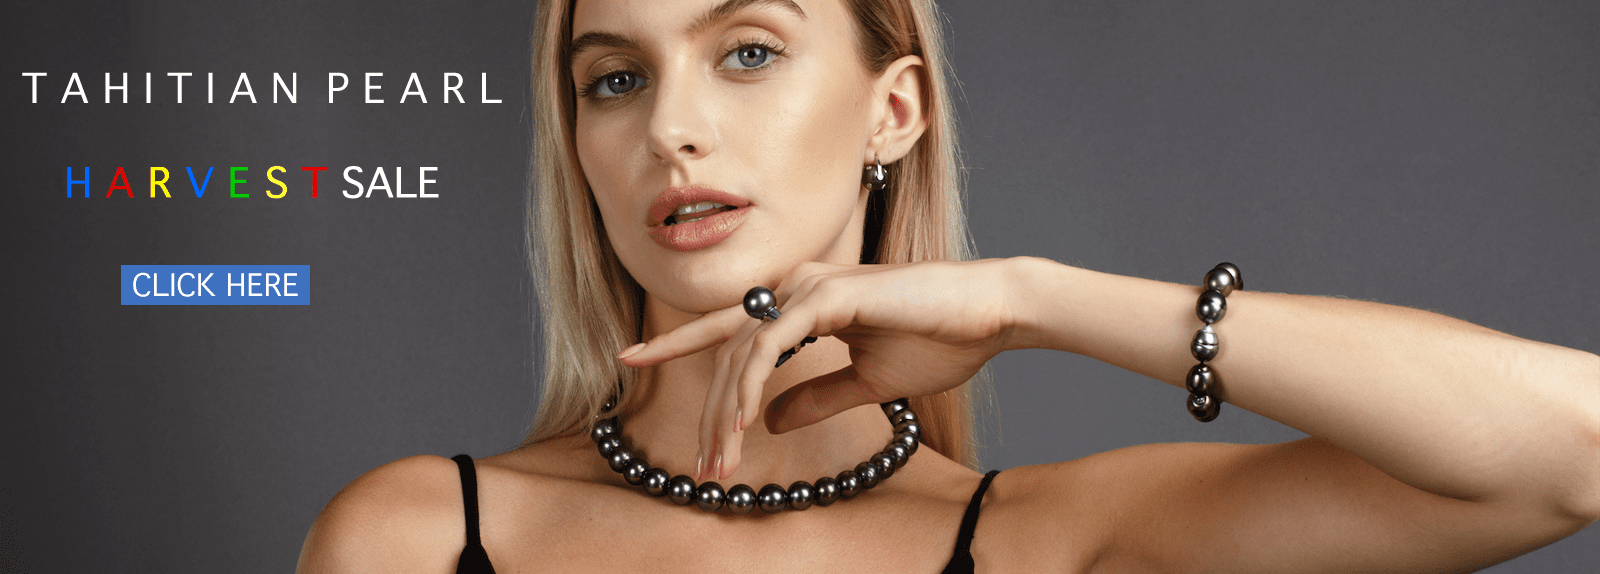 TRUE AAA Quality. The Finest Tahitian Pearls